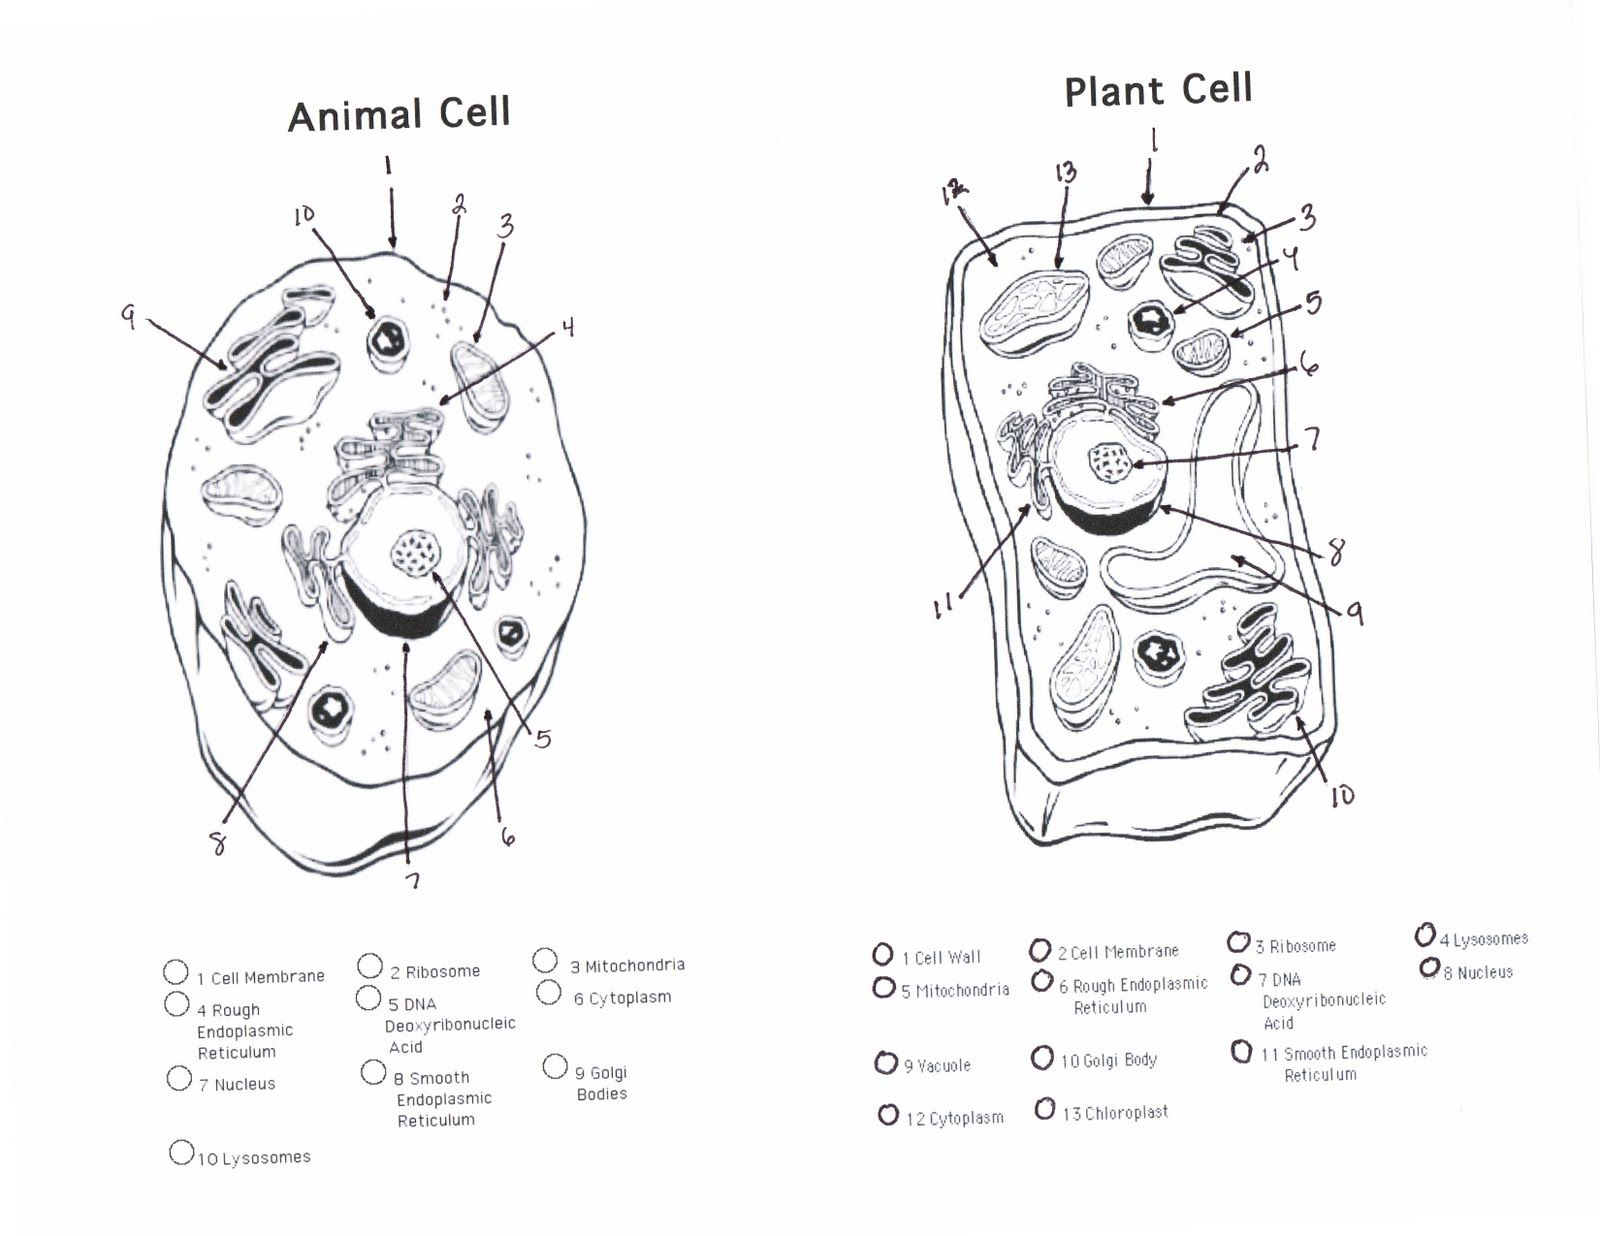 4c1433414080d58edd6c902c183e7aa5  Th Grade Worksheets On Plant And Animal Cells on animal cell worksheet high school, animal cell worksheet kindergarten, animal cell worksheet 5th, animal cell worksheet biology, plant and animal cell diagram 5th grade,